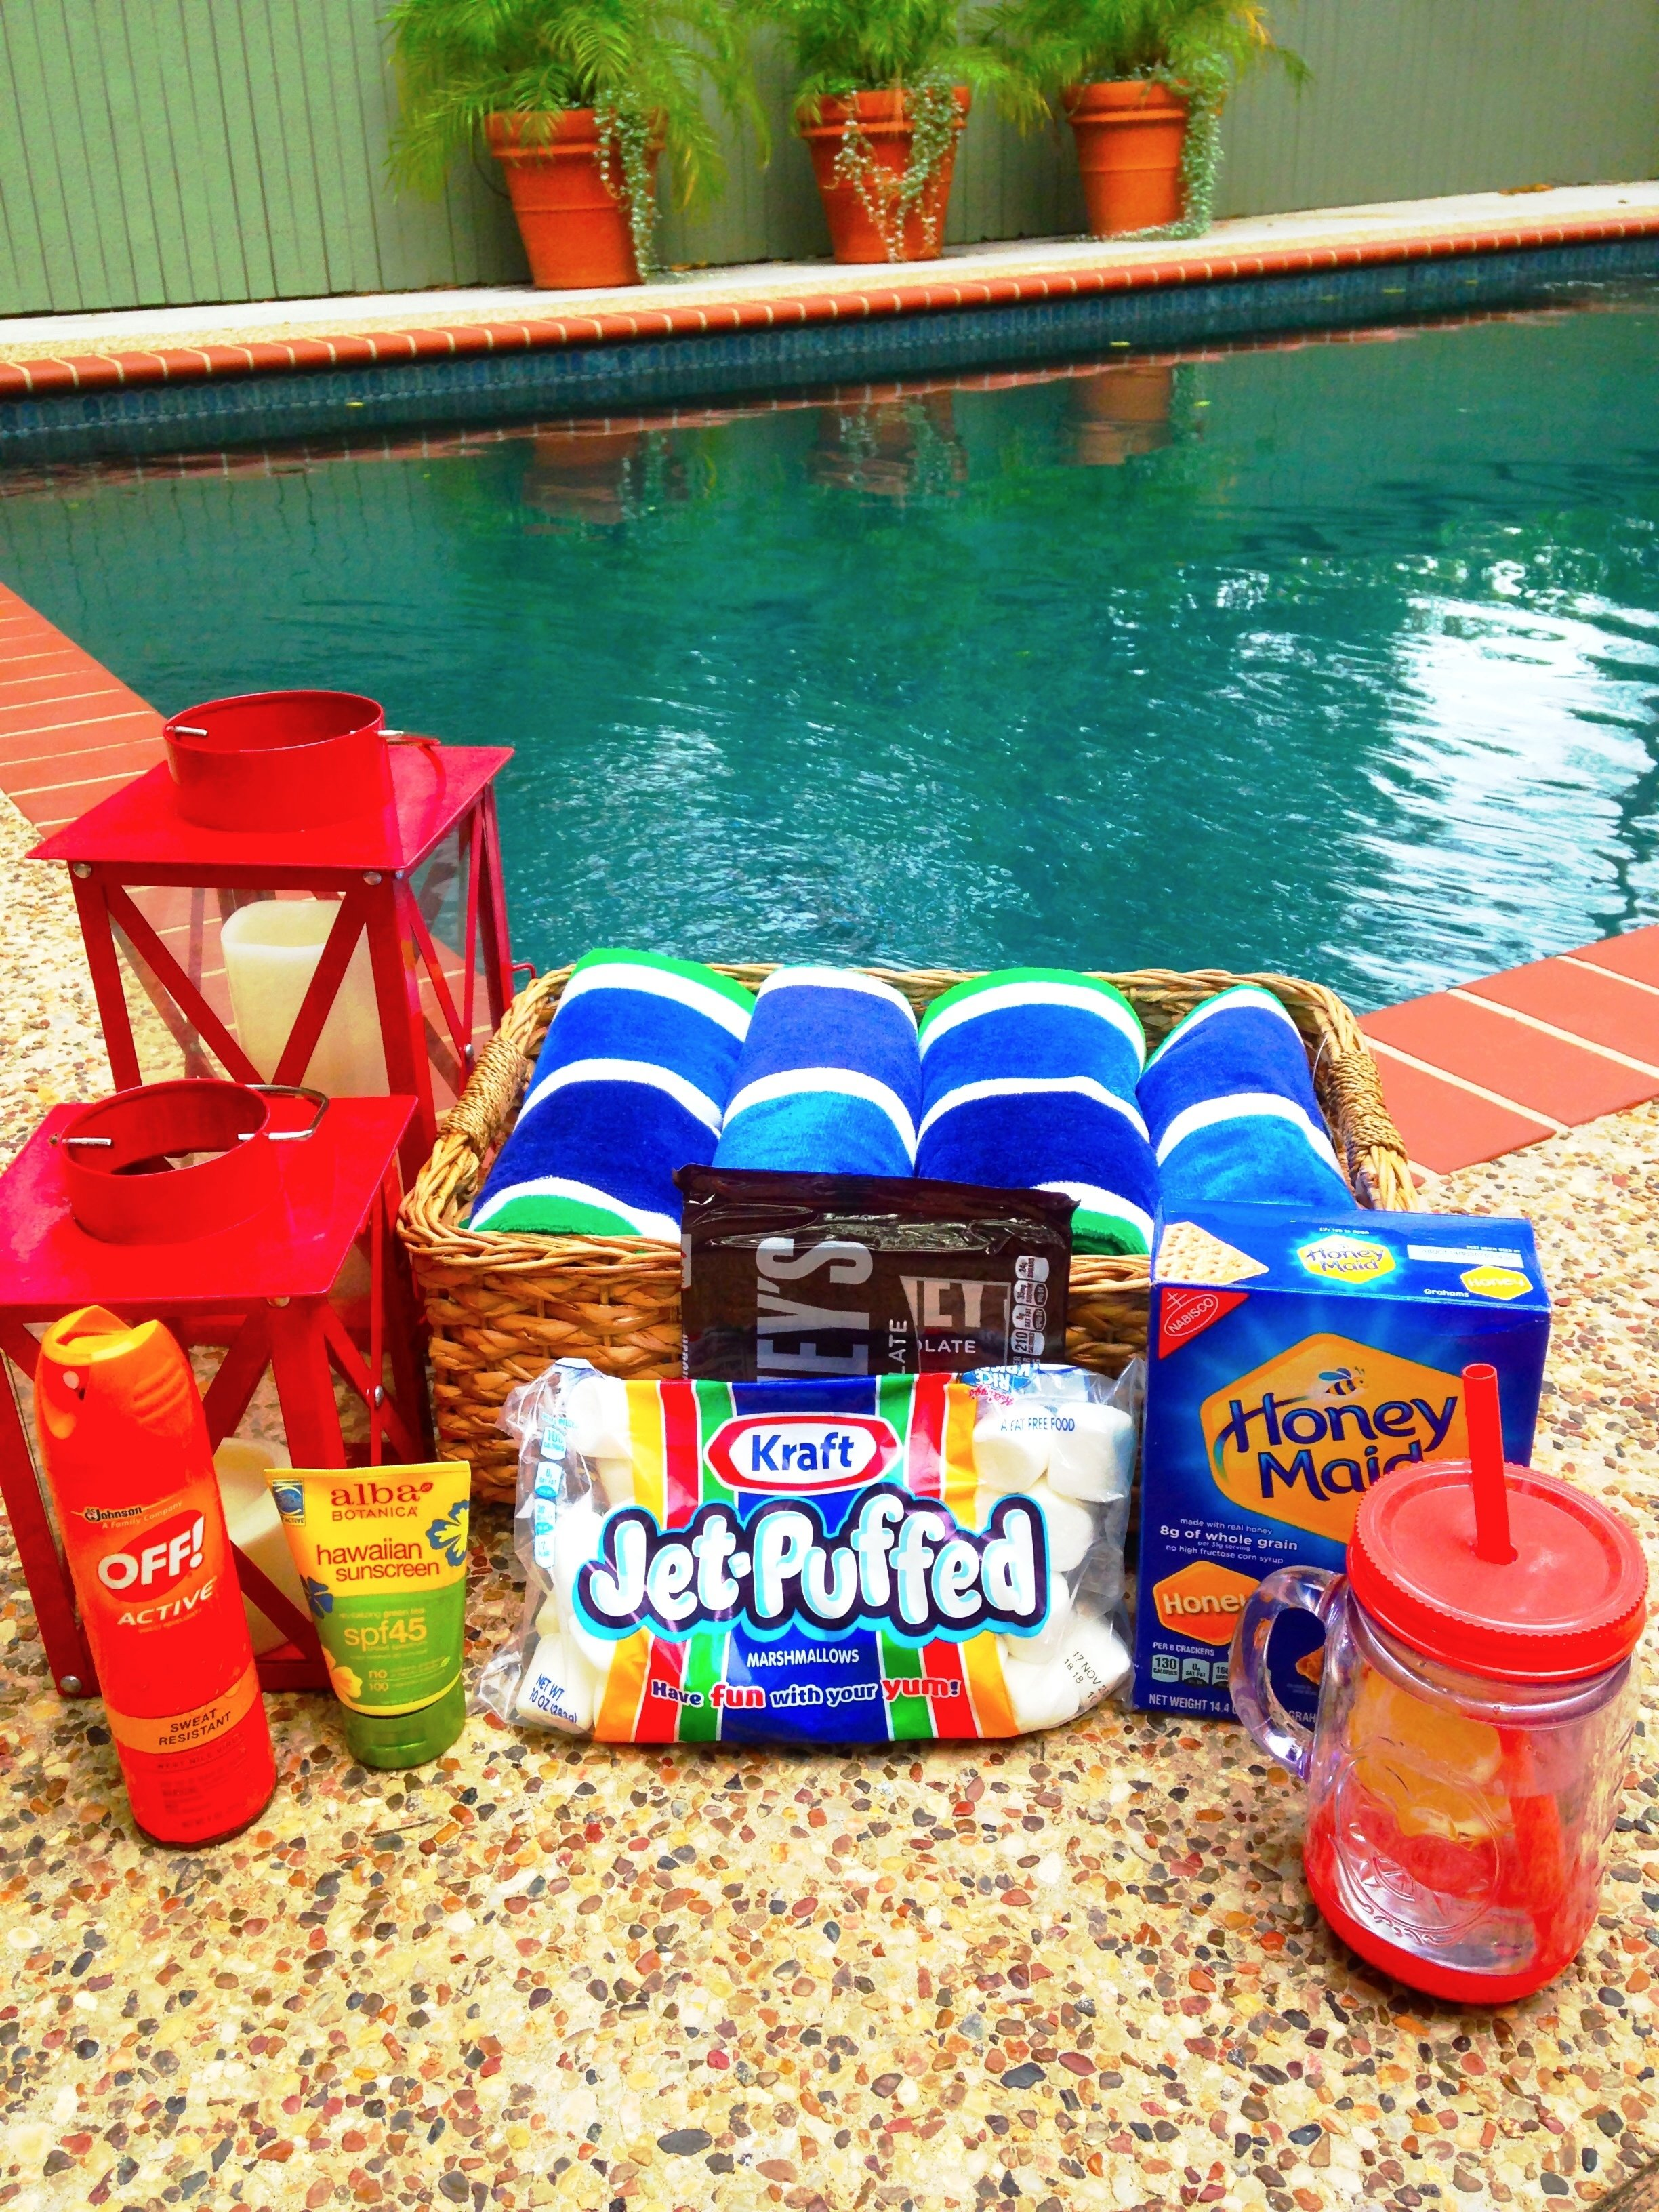 10 Most Recommended Ideas For Fourth Of July Party party etiquette 8 festive 4th of july pool party ideas 5 2020